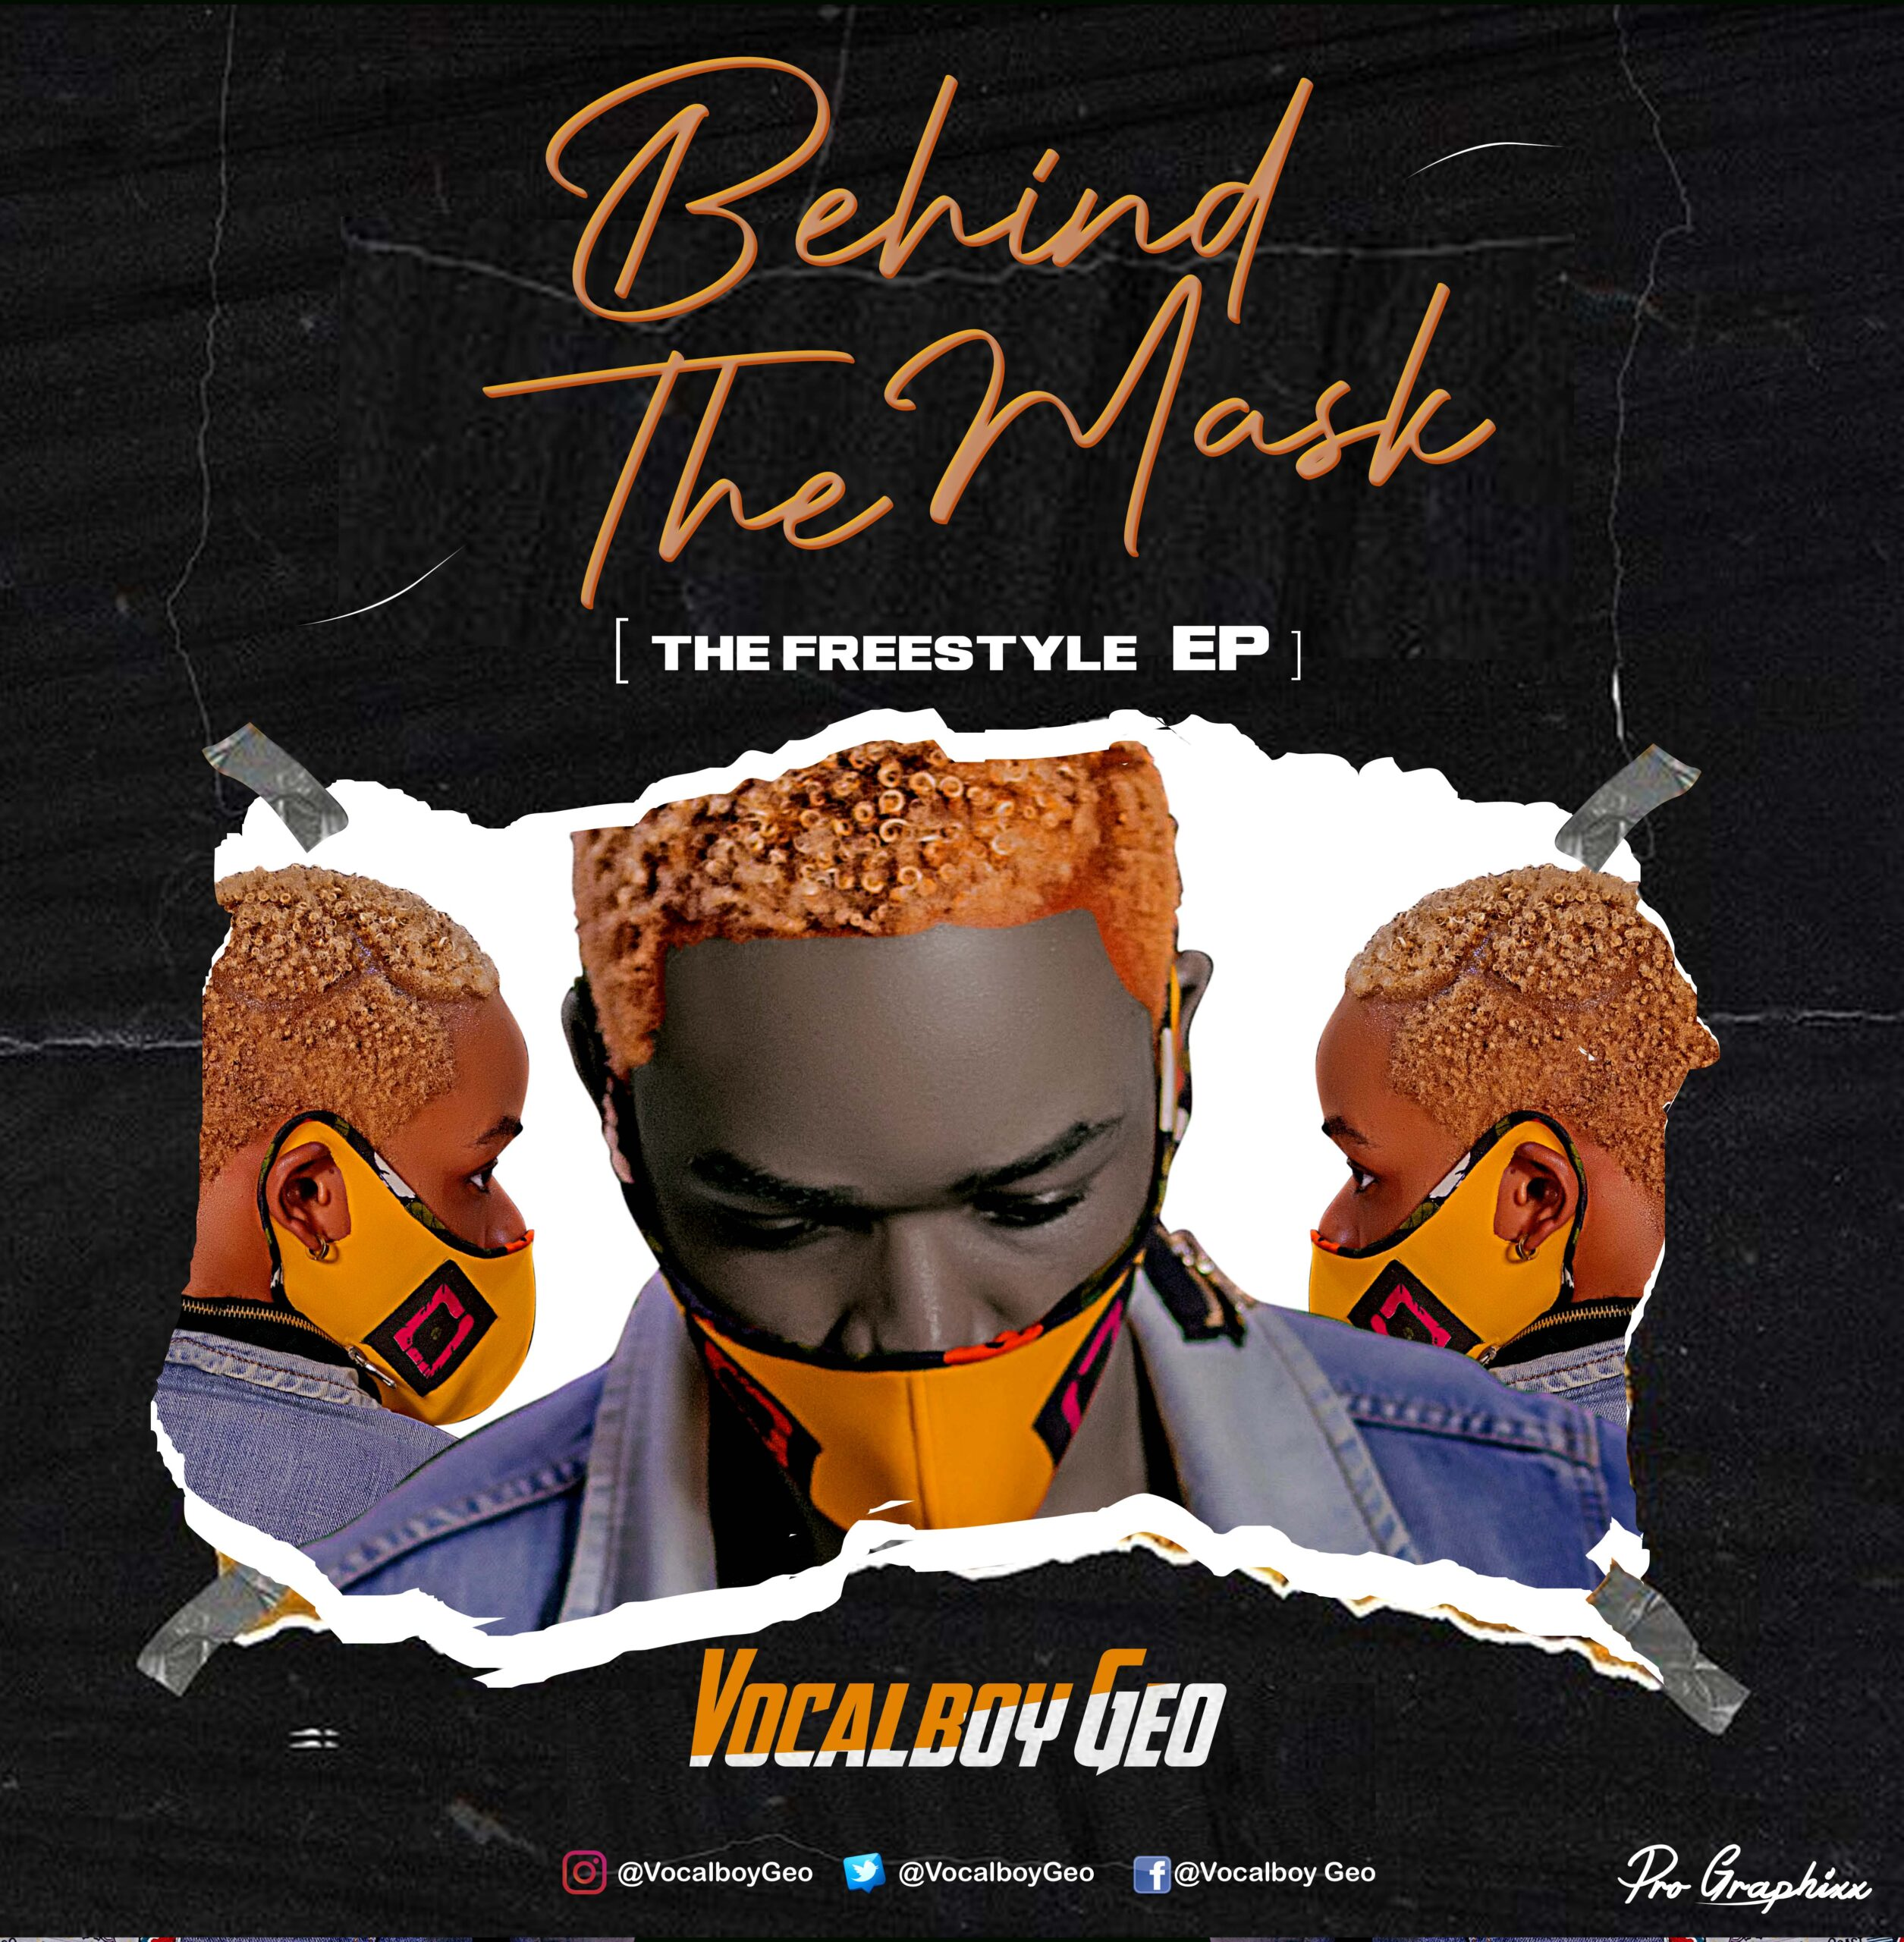 DOWNLOAD FULL EP: Vocalboy Geo – Behind the mask (The Freestyle EP)